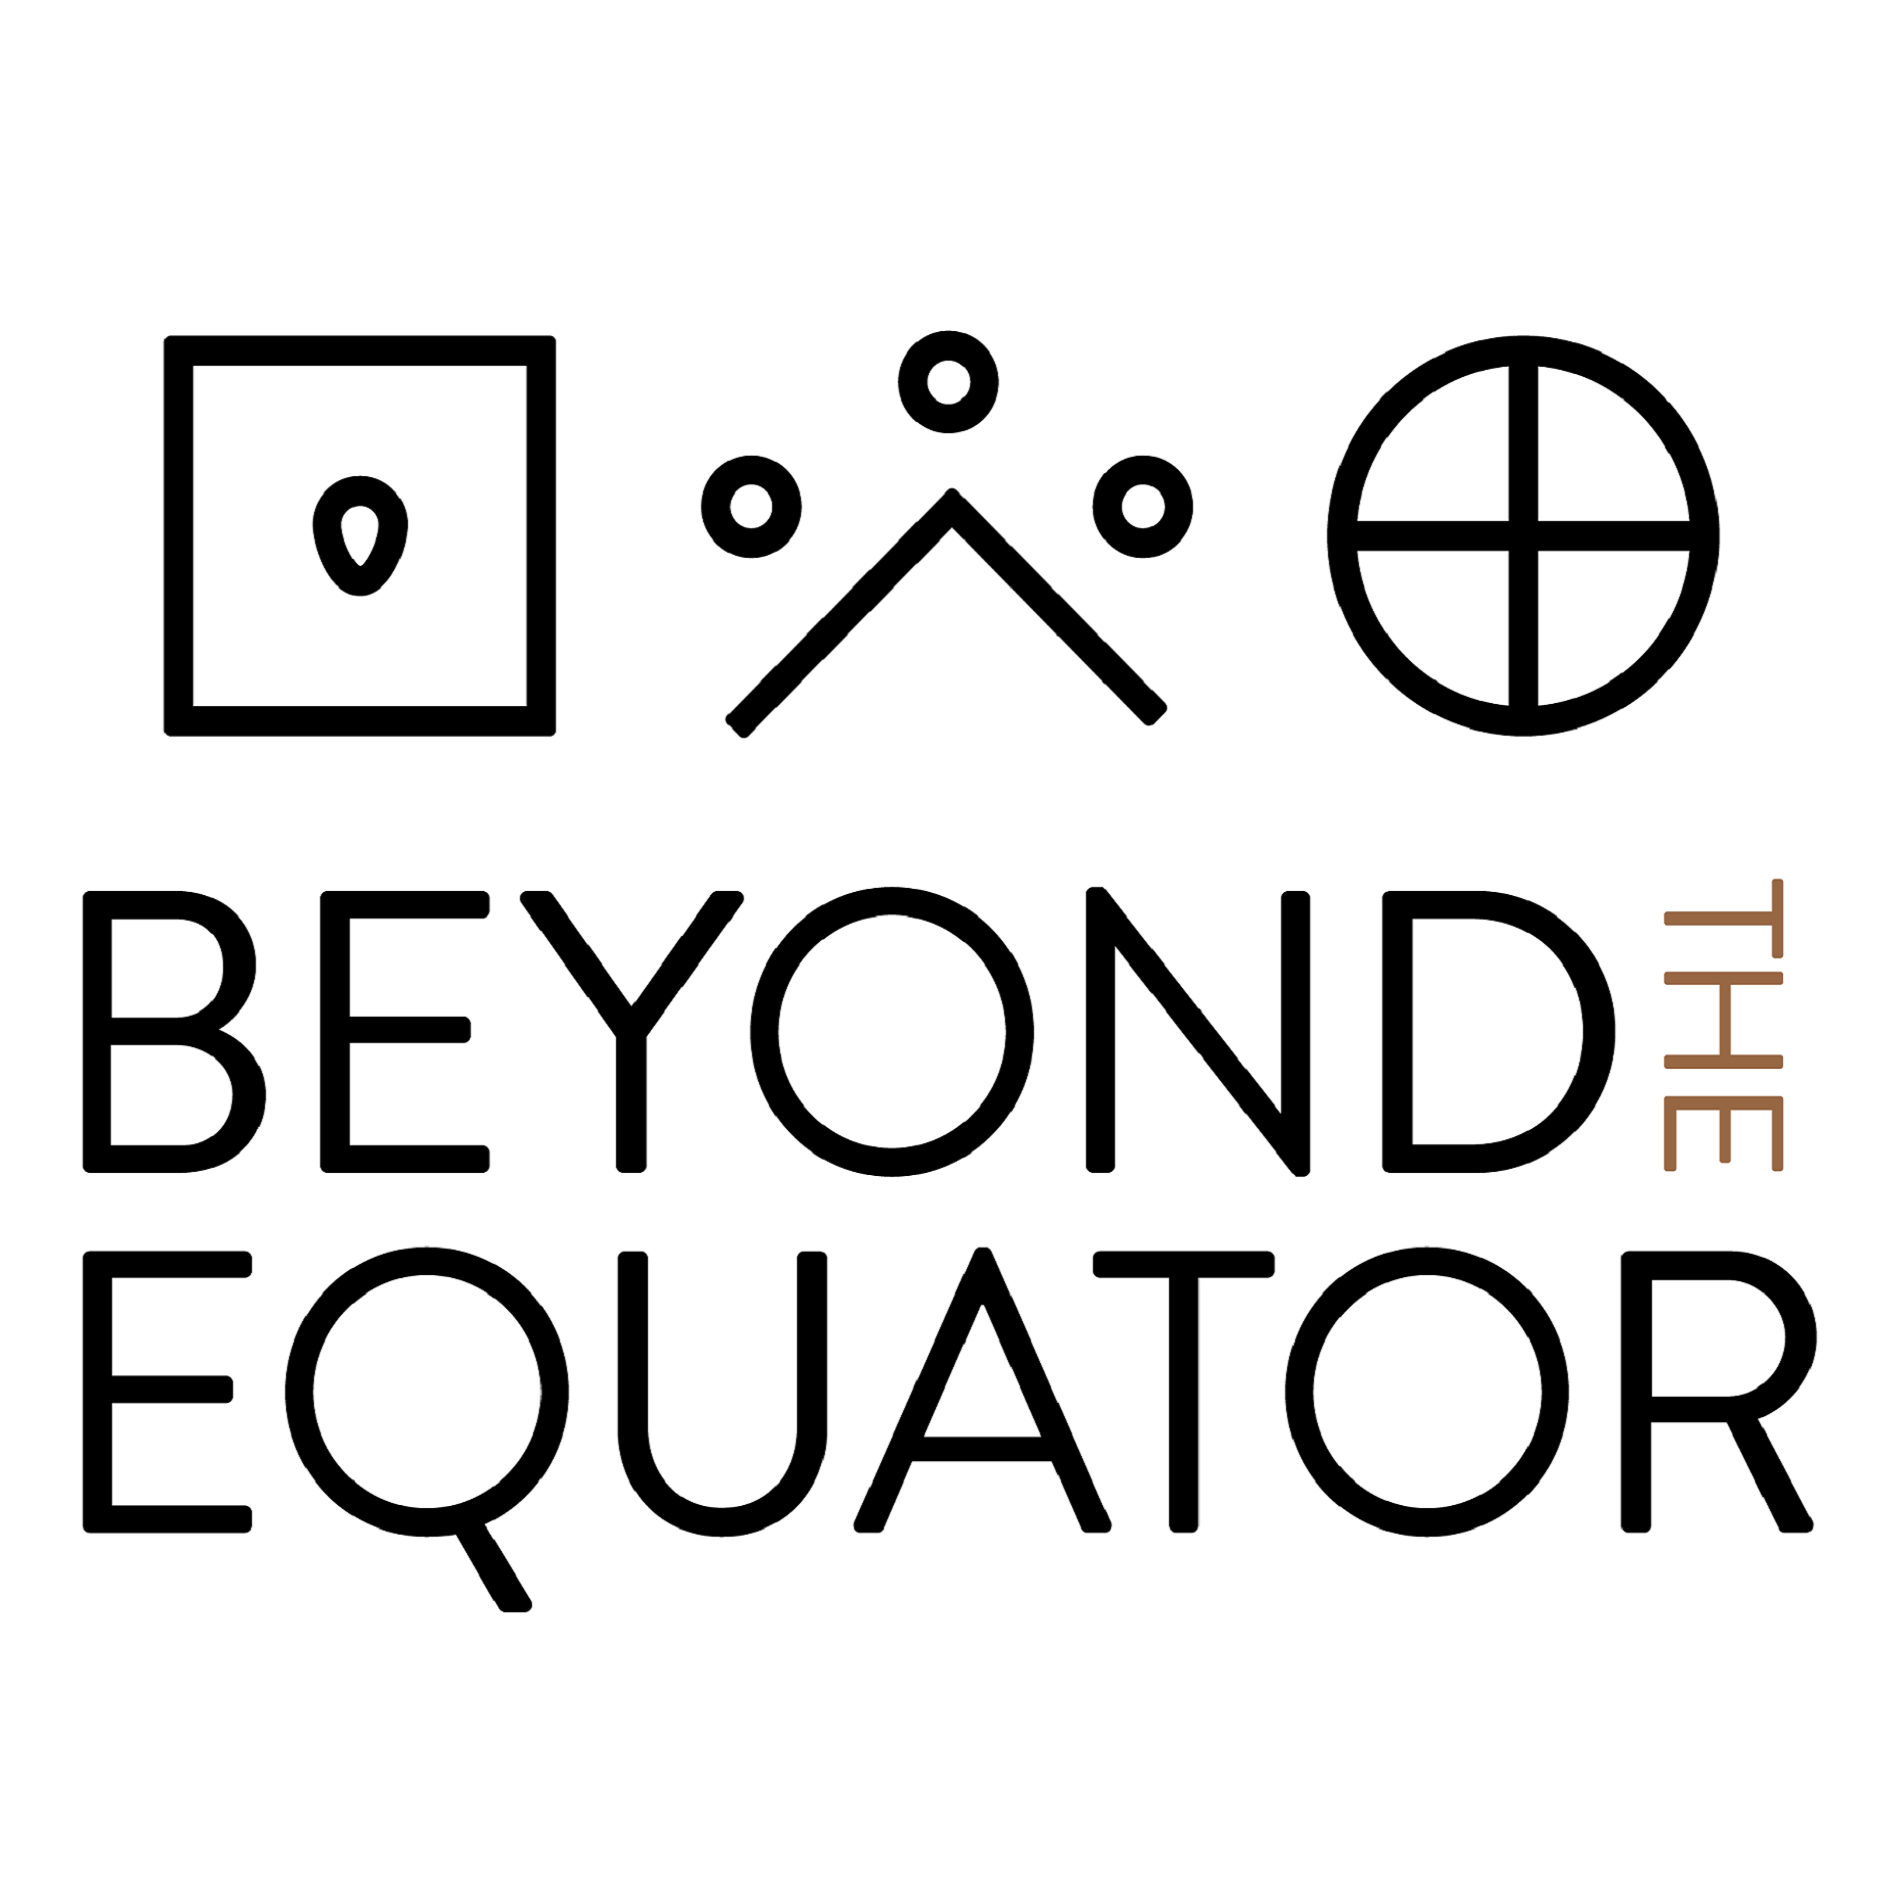 Beyond The Equator Announces The Development of An E-Book of Delicious Healthy Recipes